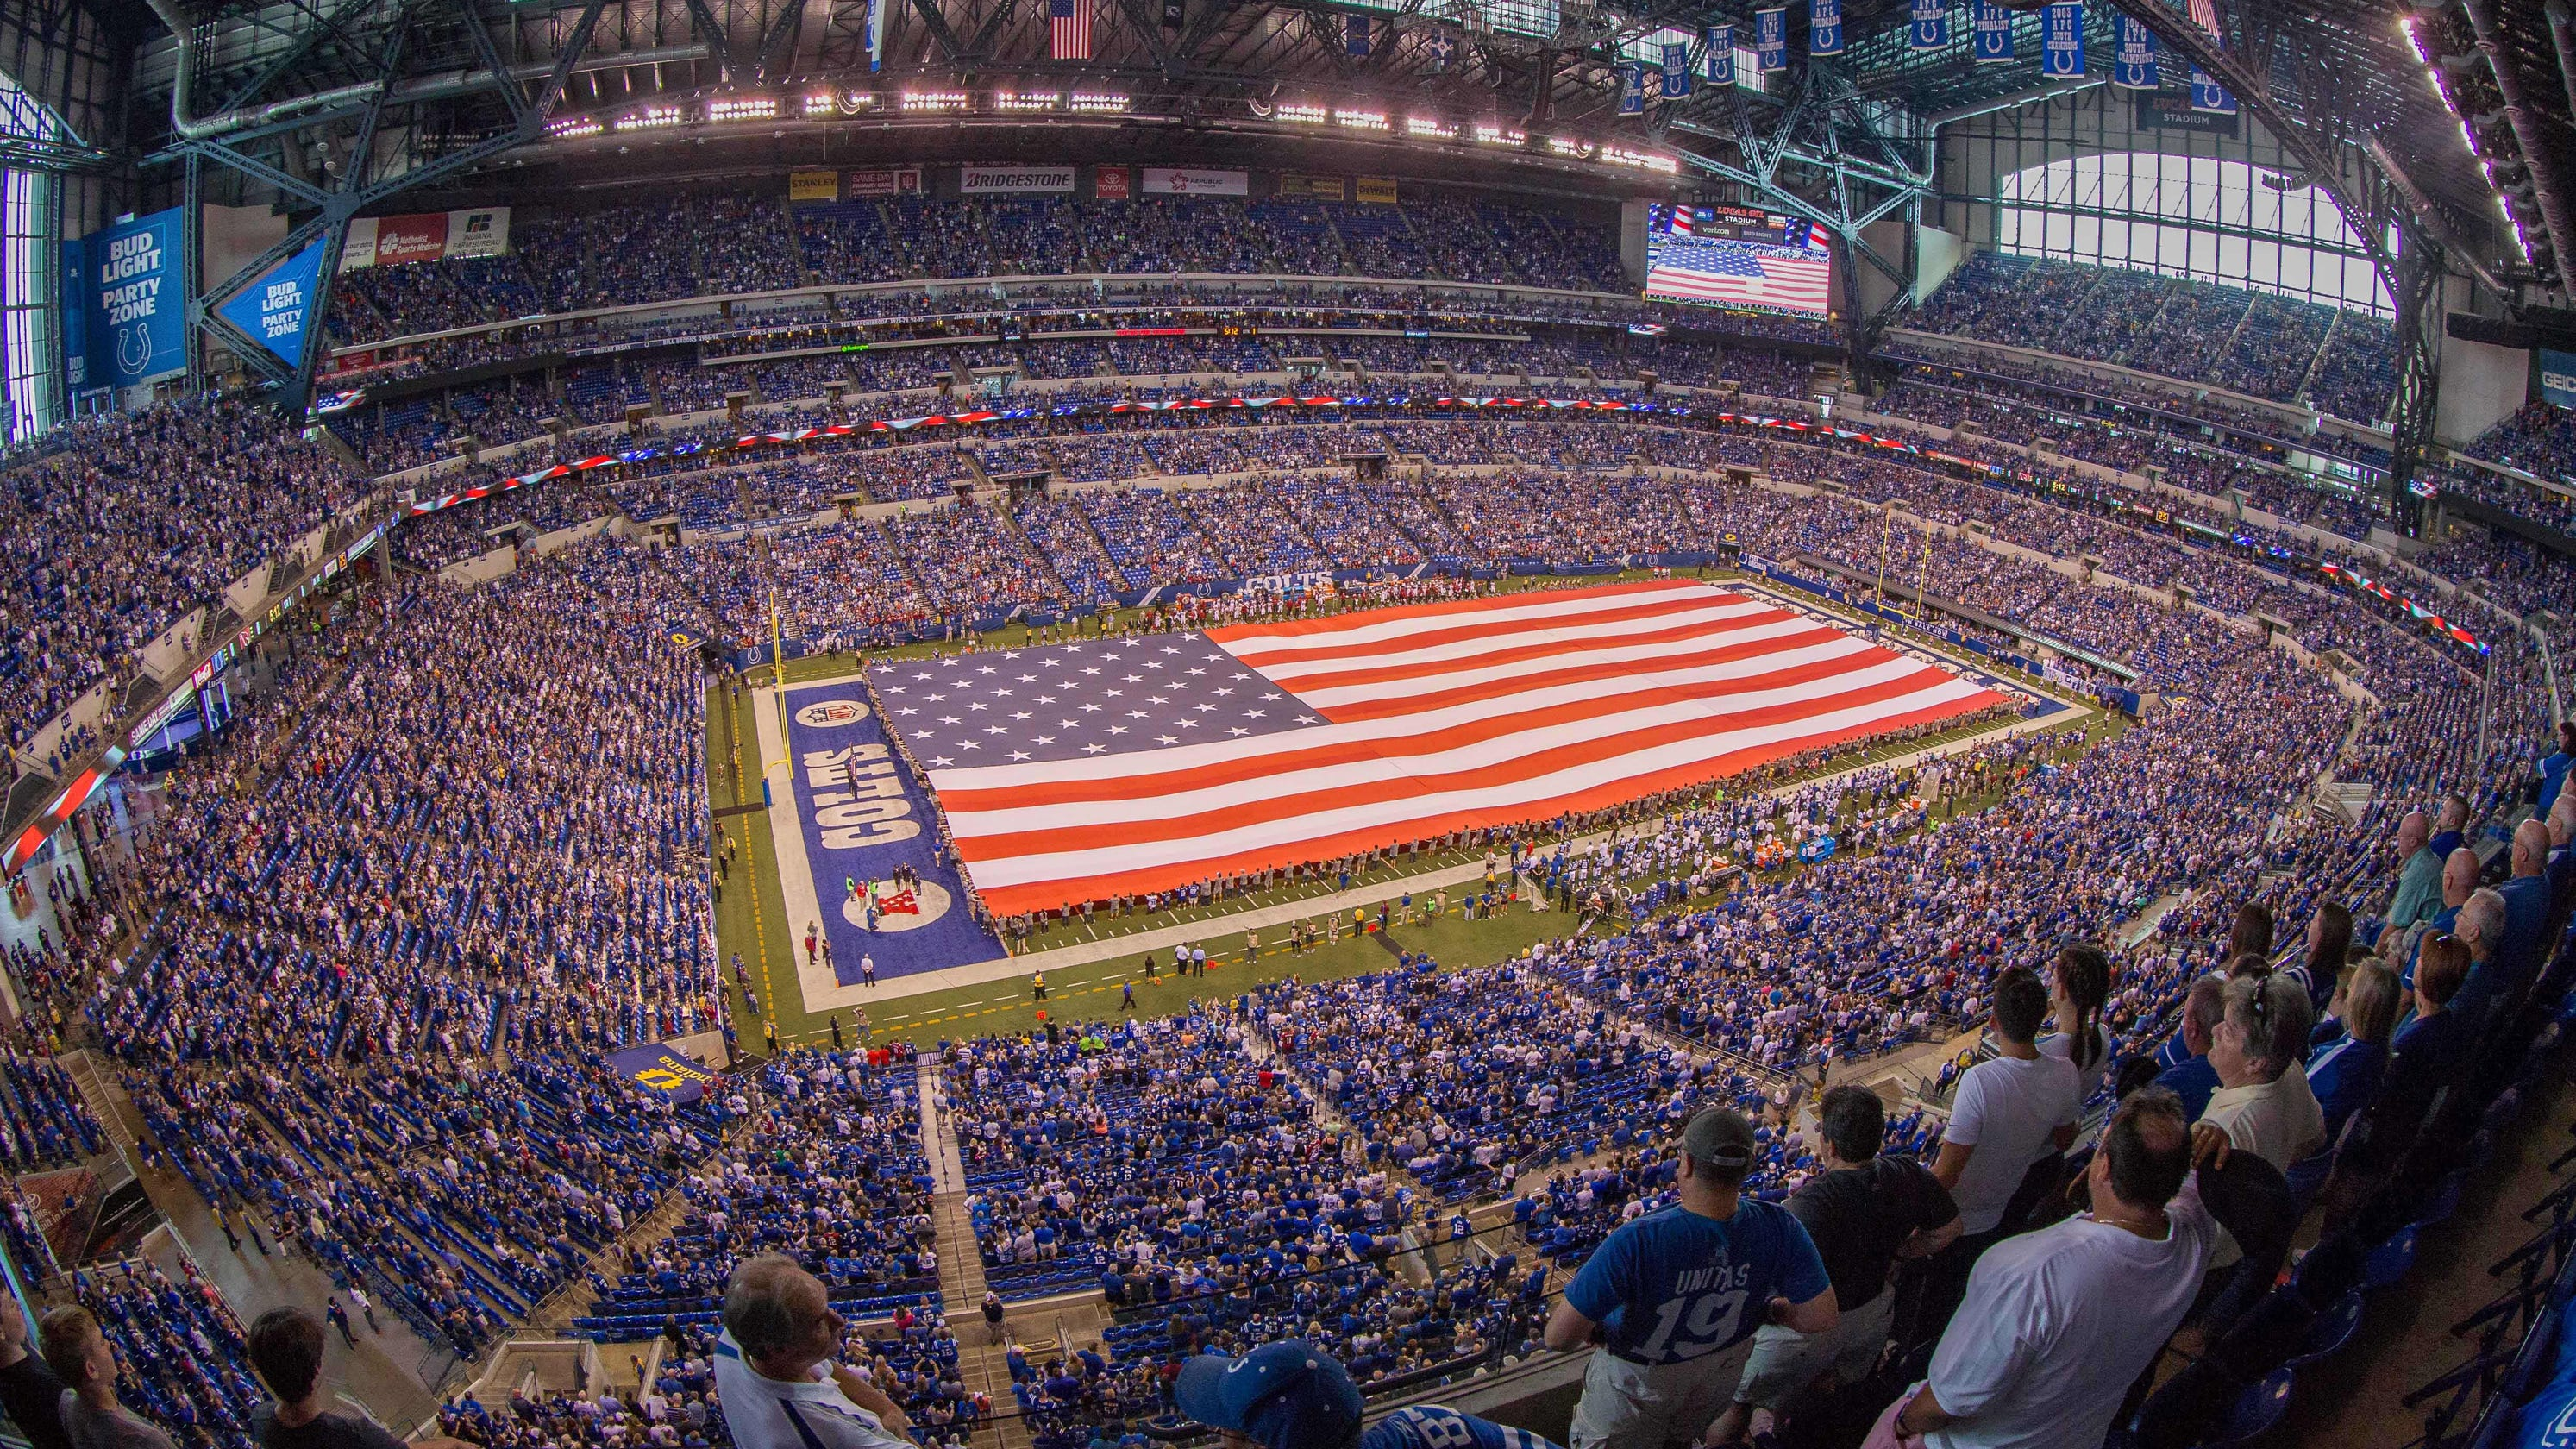 Things we'd change in sports: It's time to stop playing national anthem at sporting events